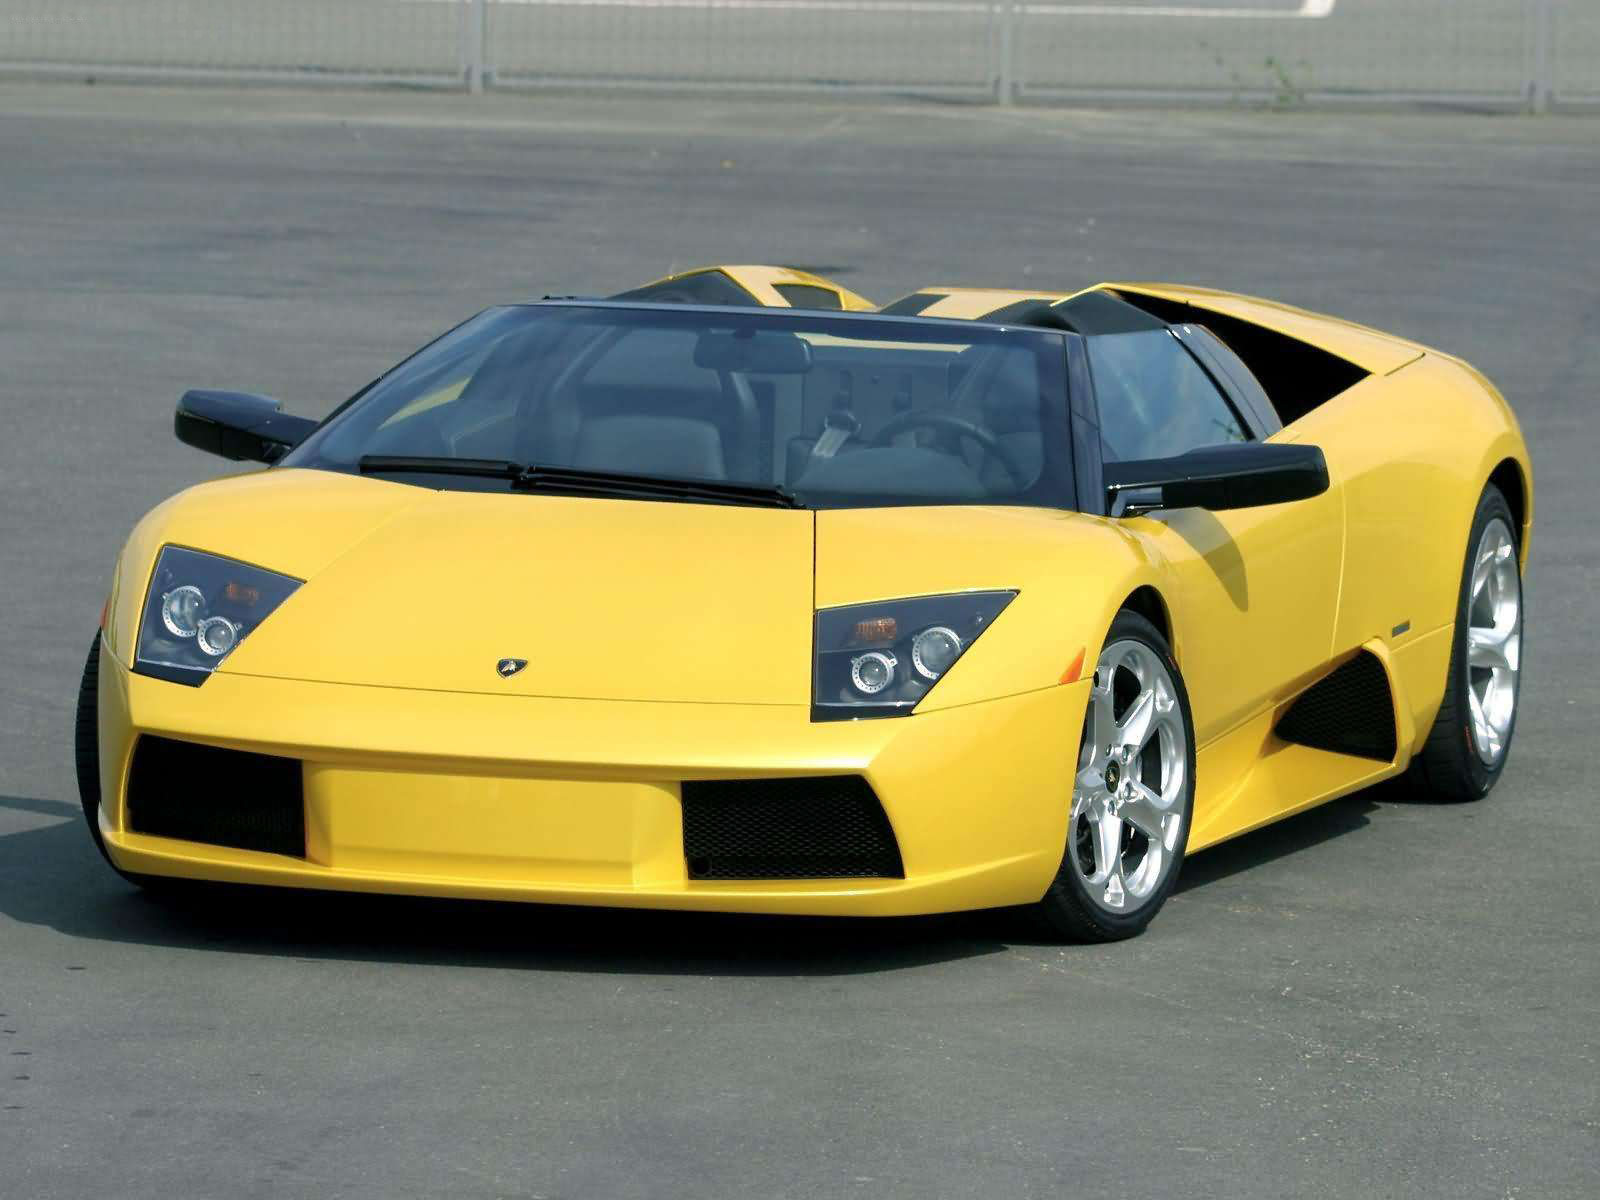 Car Accident Lawyers 2004 Lamborghini Murcielago Roadster HD Wallpapers Download free images and photos [musssic.tk]